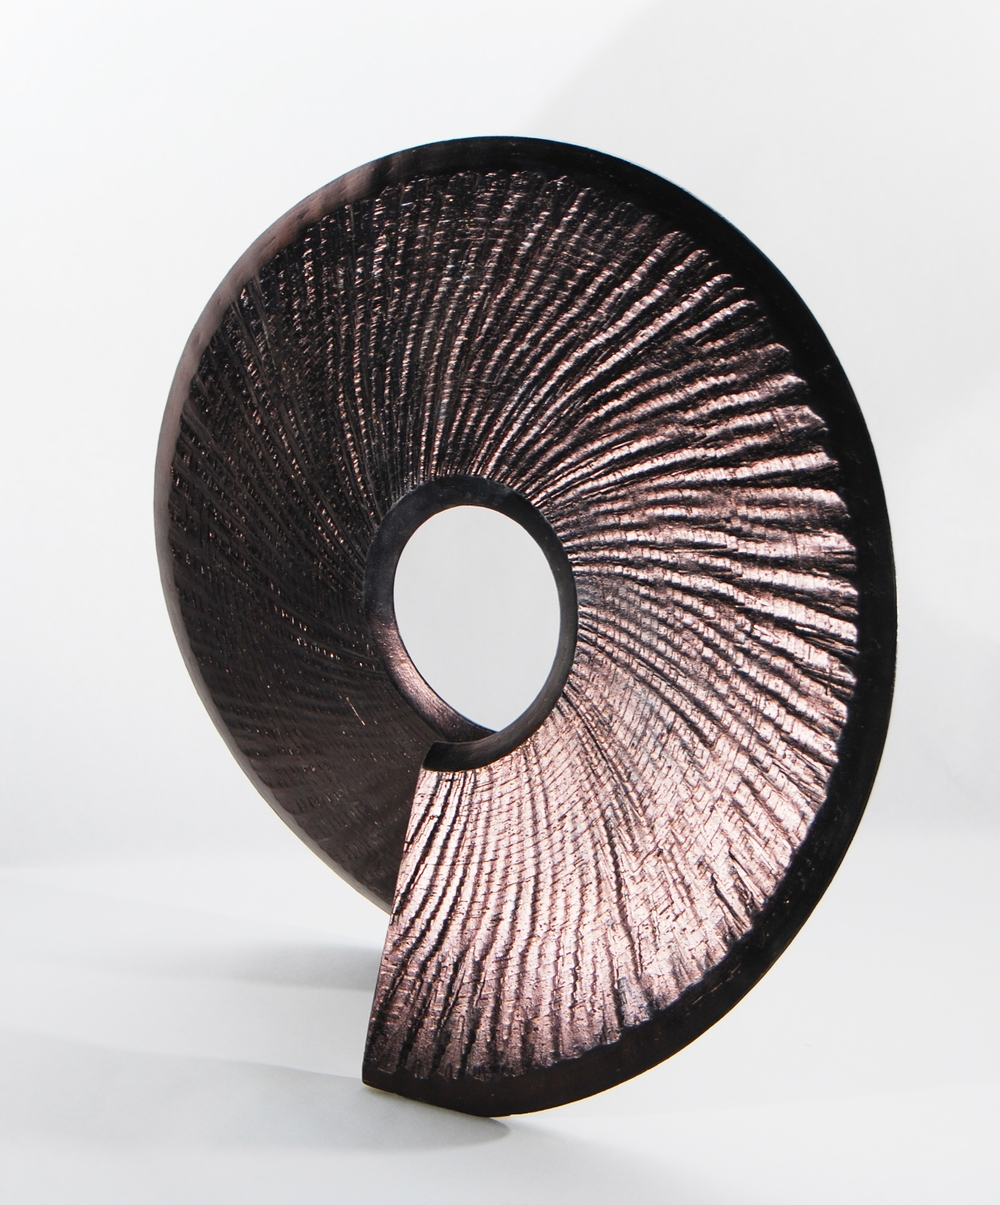 Reduction Fired Coriolis 2010